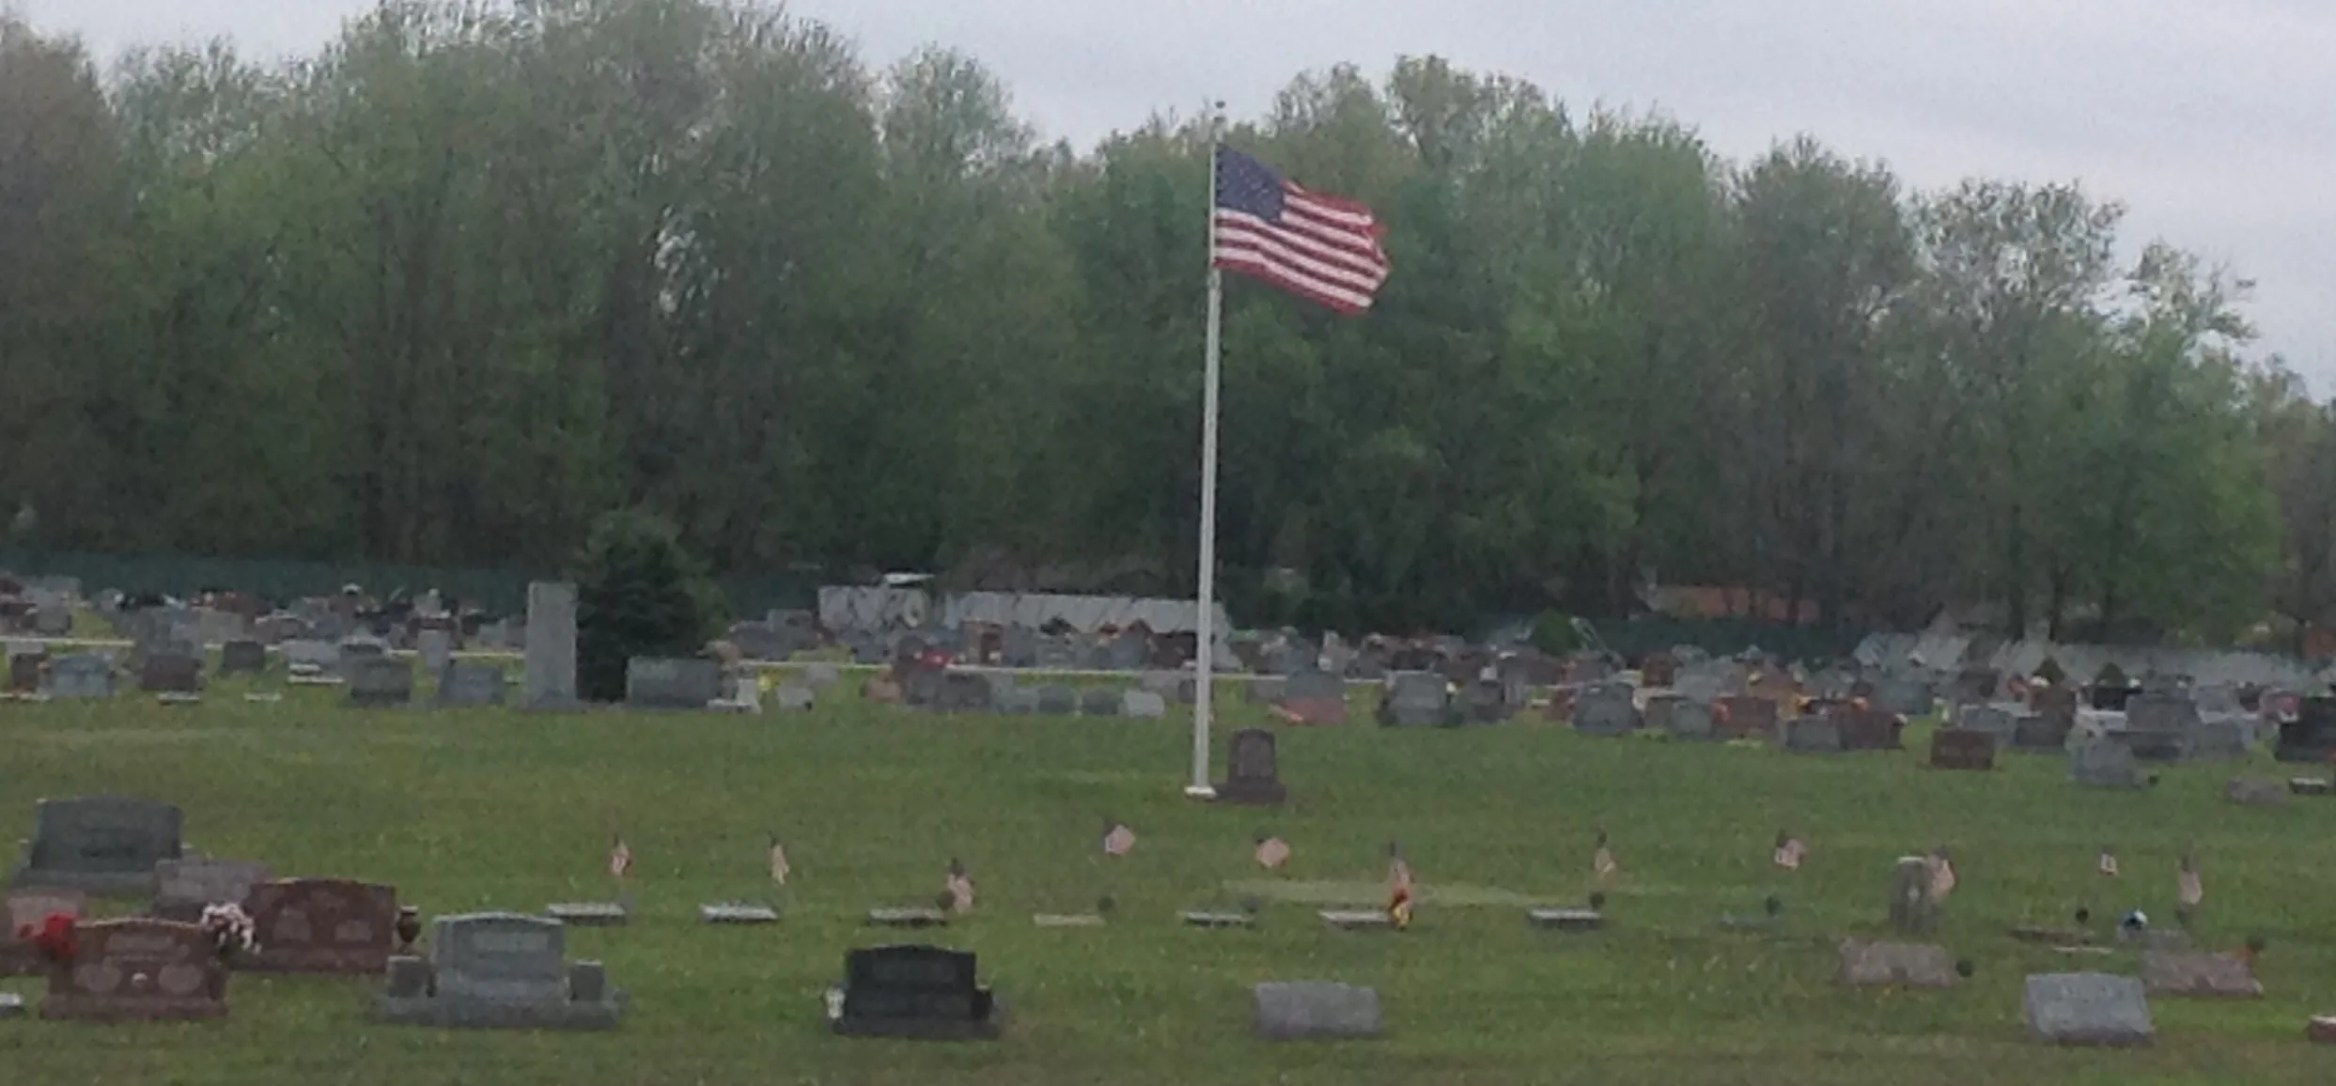 Veteran Section Tate Township Cemetery